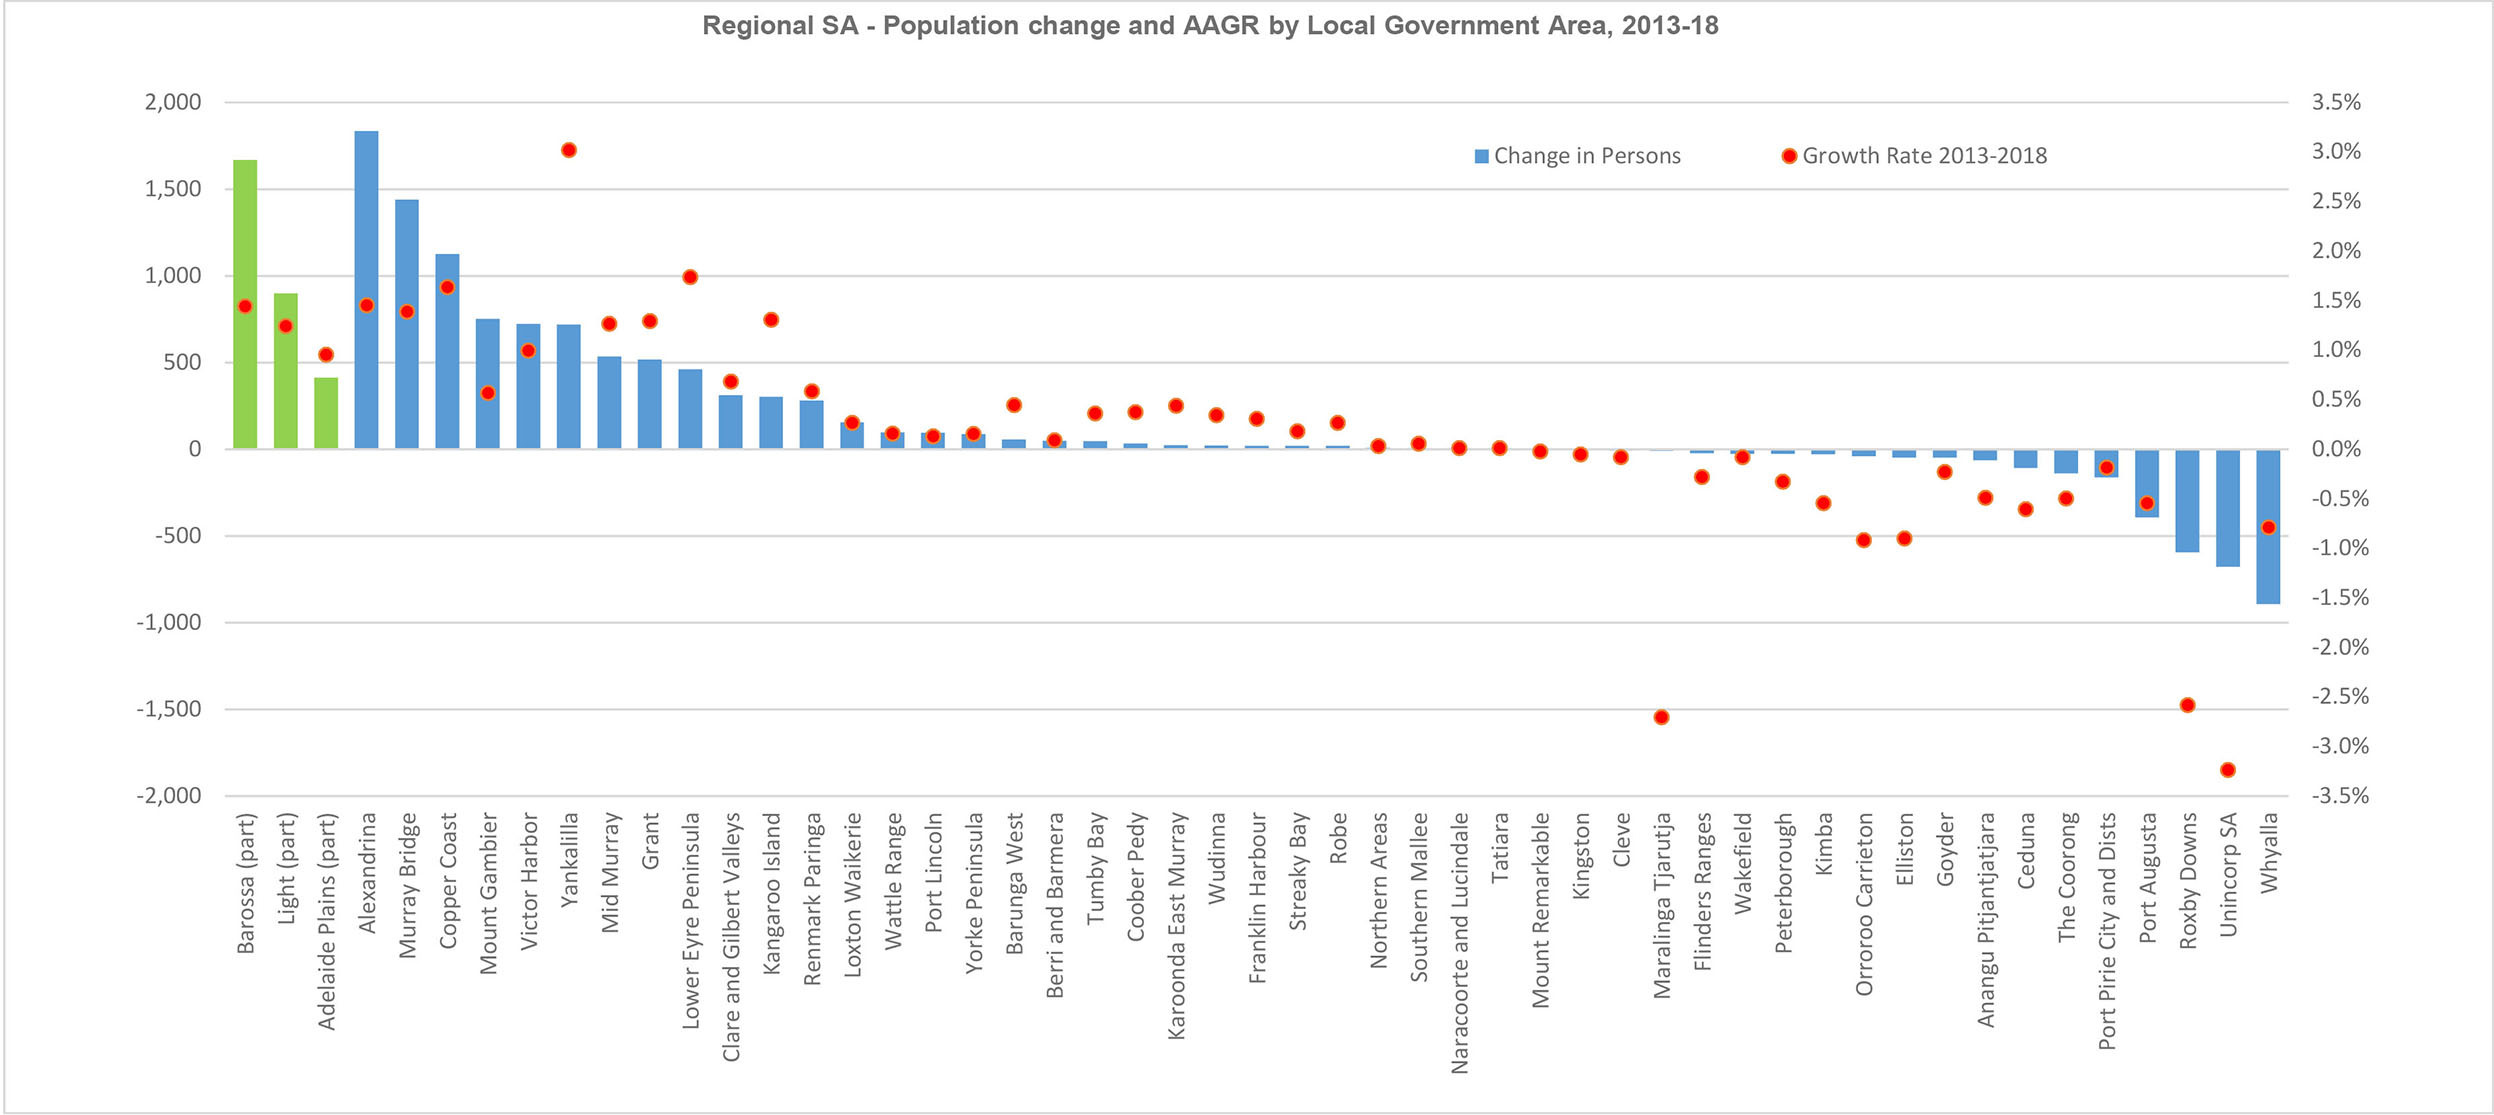 Population change by Local Government Area, 2013-18 BSA